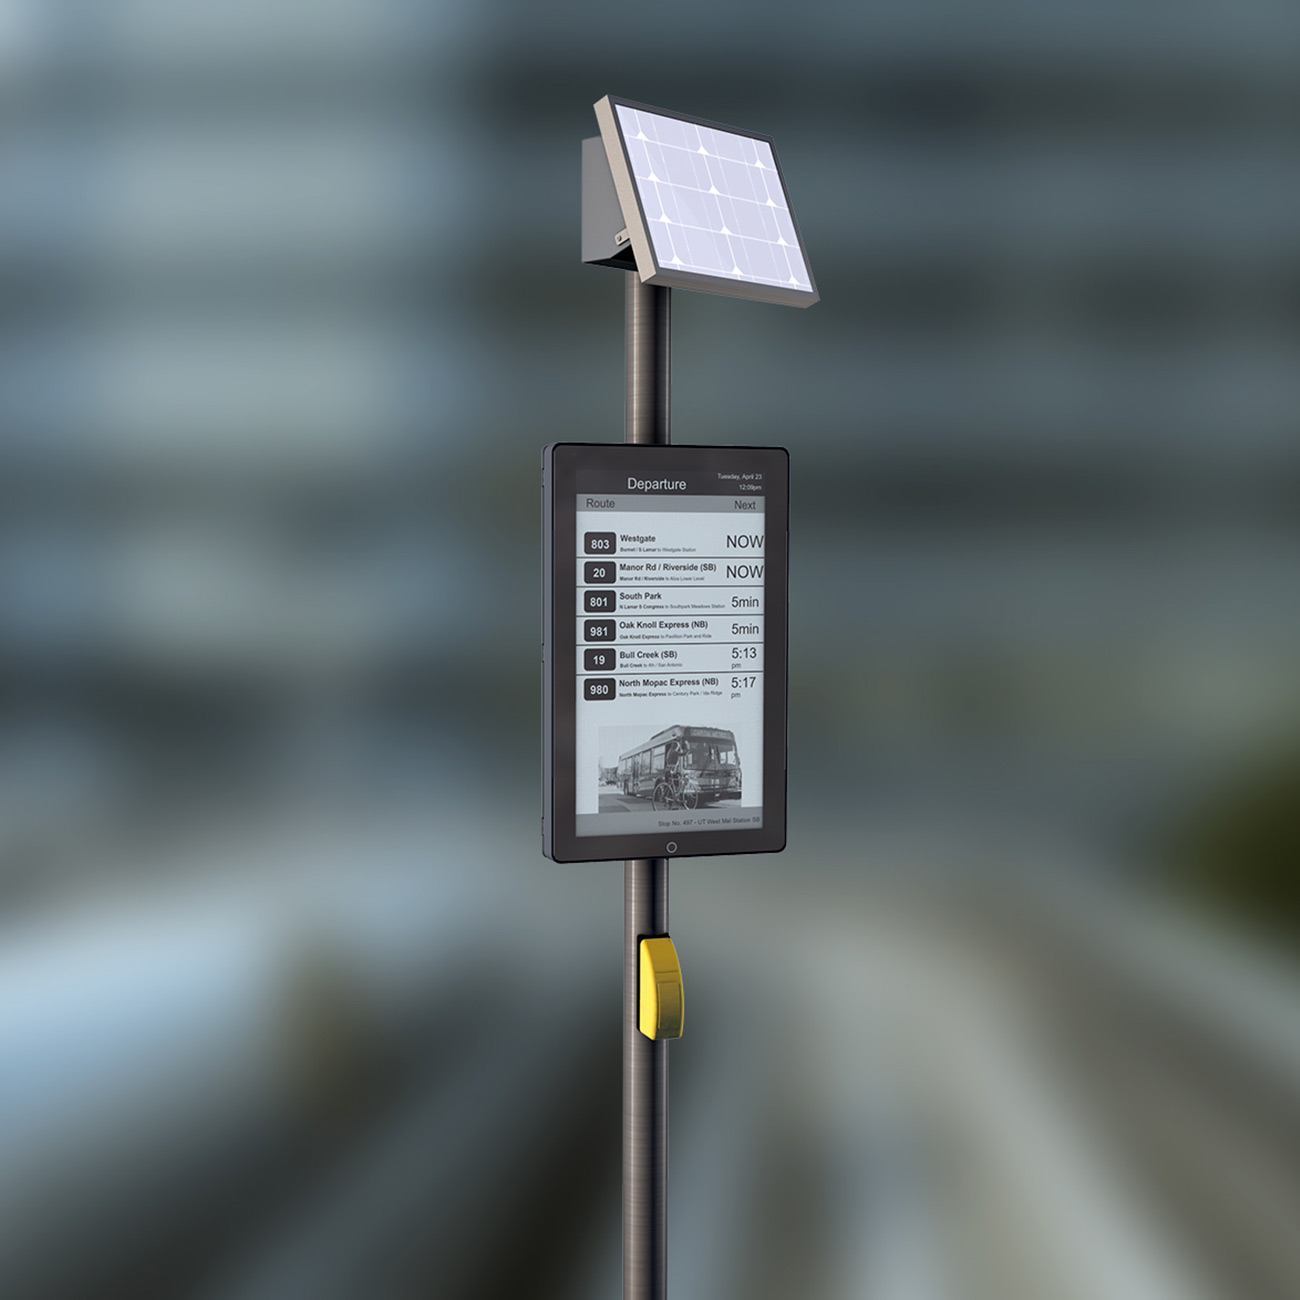 BUS AND TRAM PLATFORM DISPLAYS